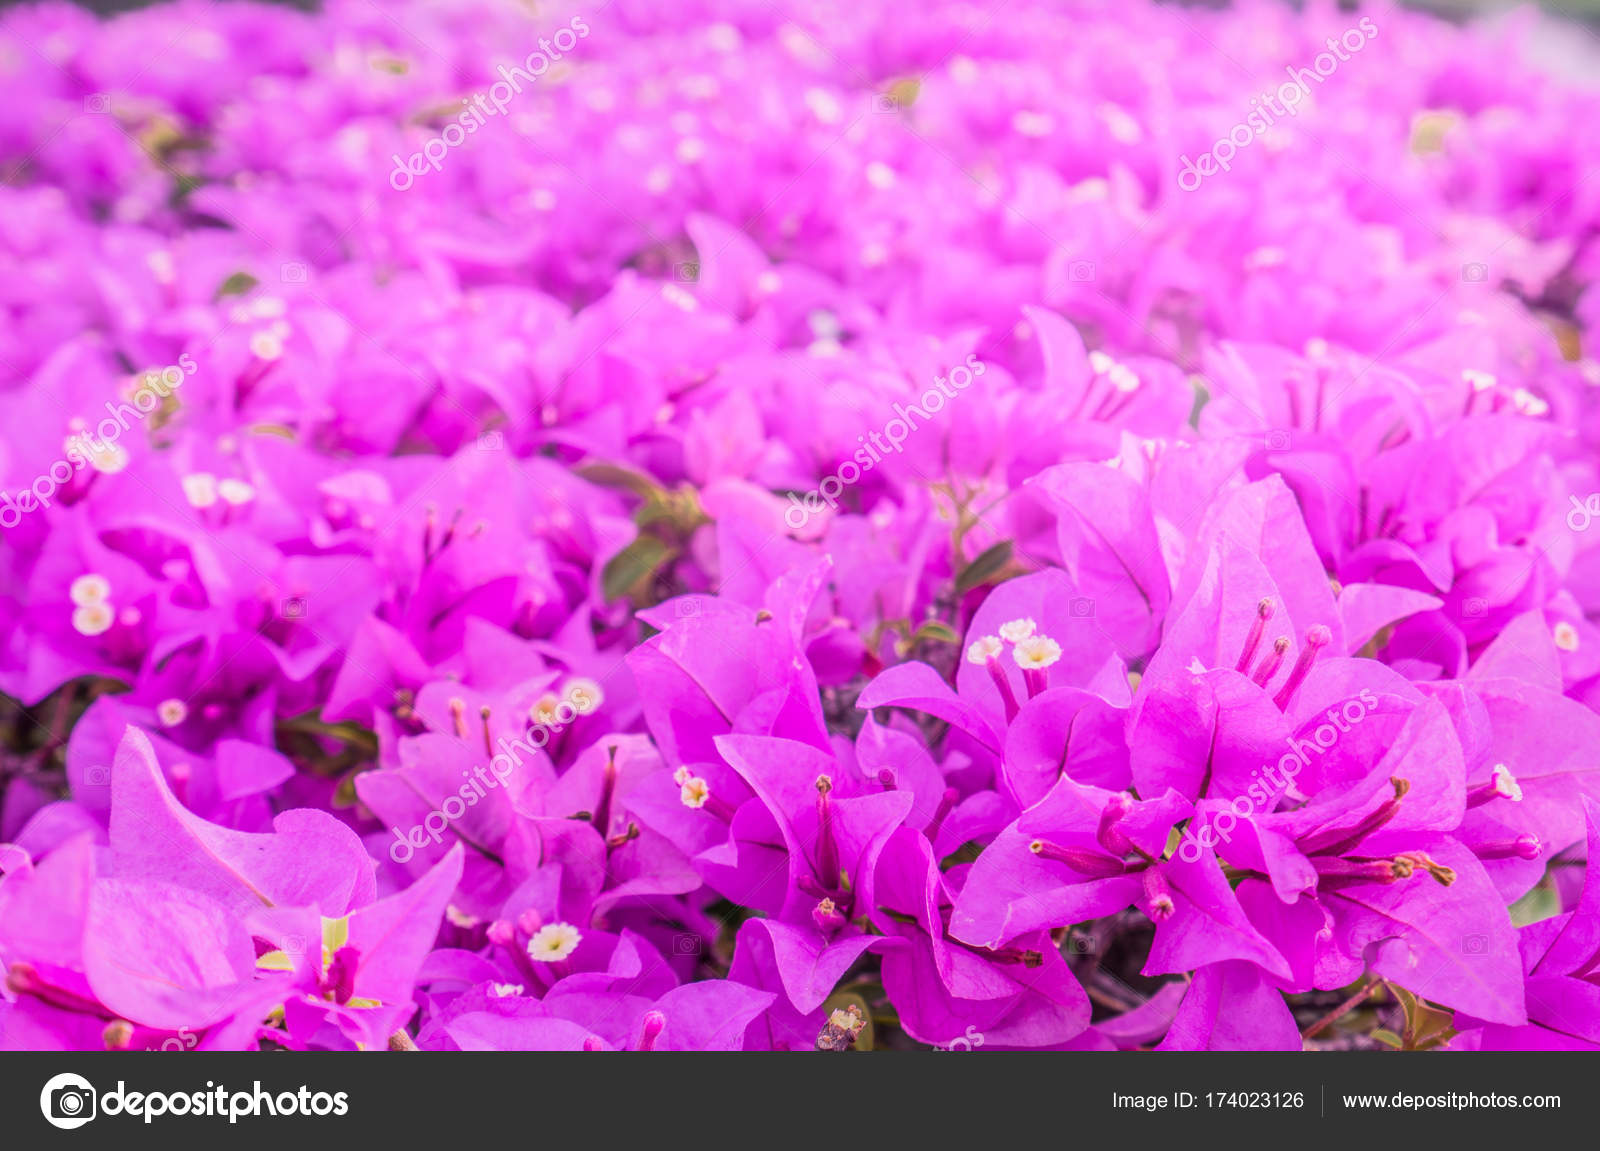 Beautiful Pink Paper Flower Bougainvillea Shiny Flowers With